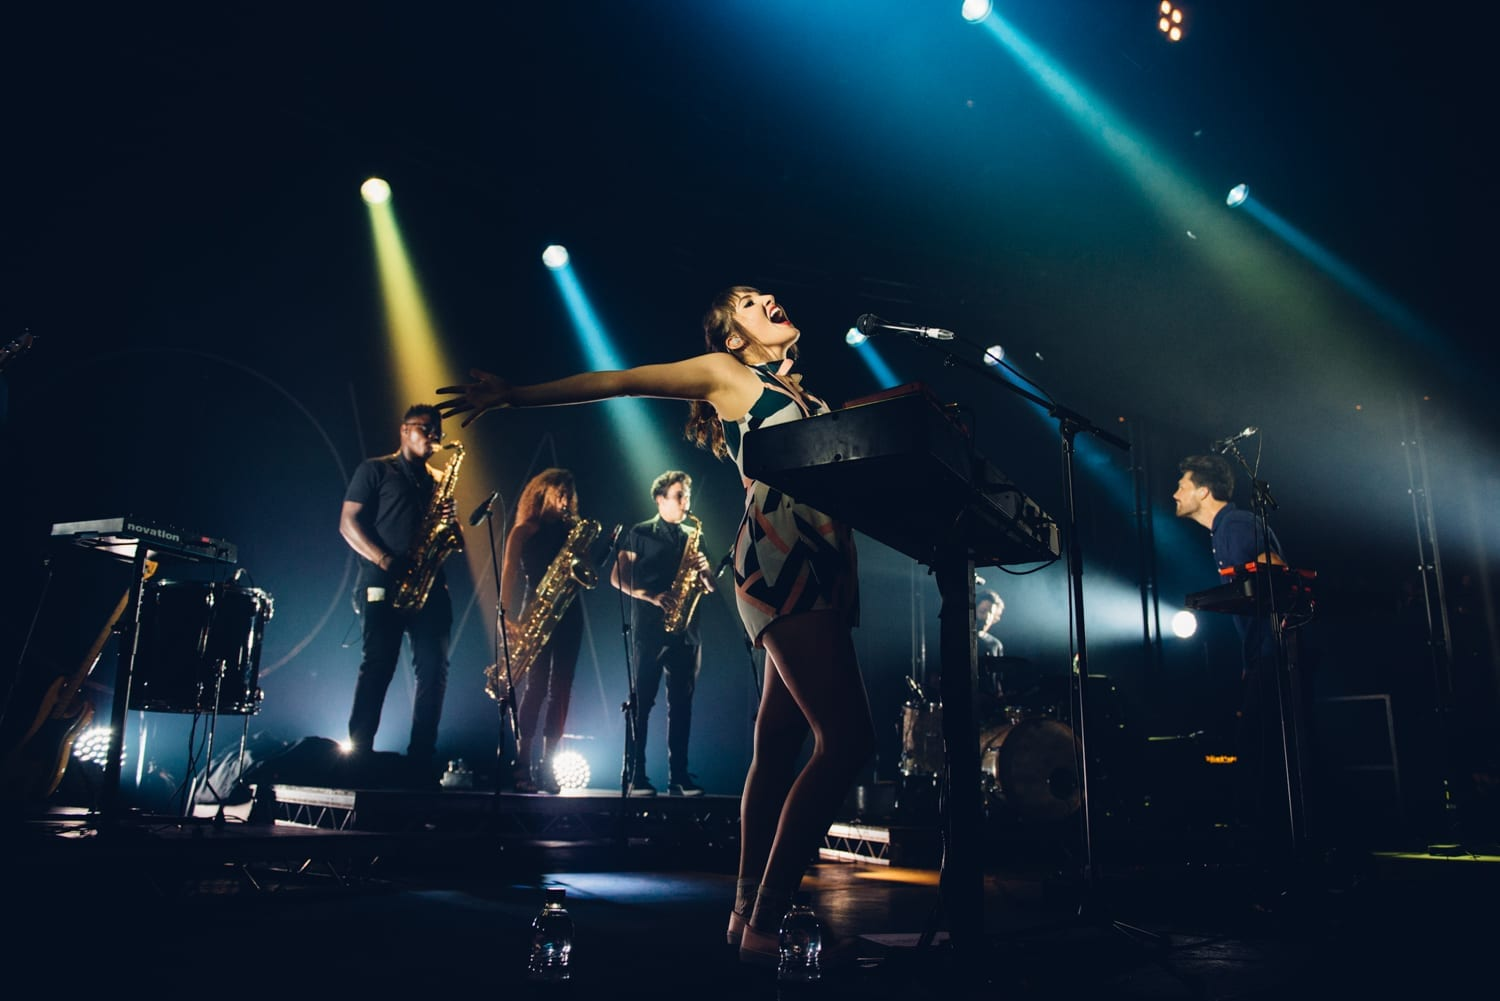 Gallery: Oh Wonder // Roundhouse, London – 13.09.16